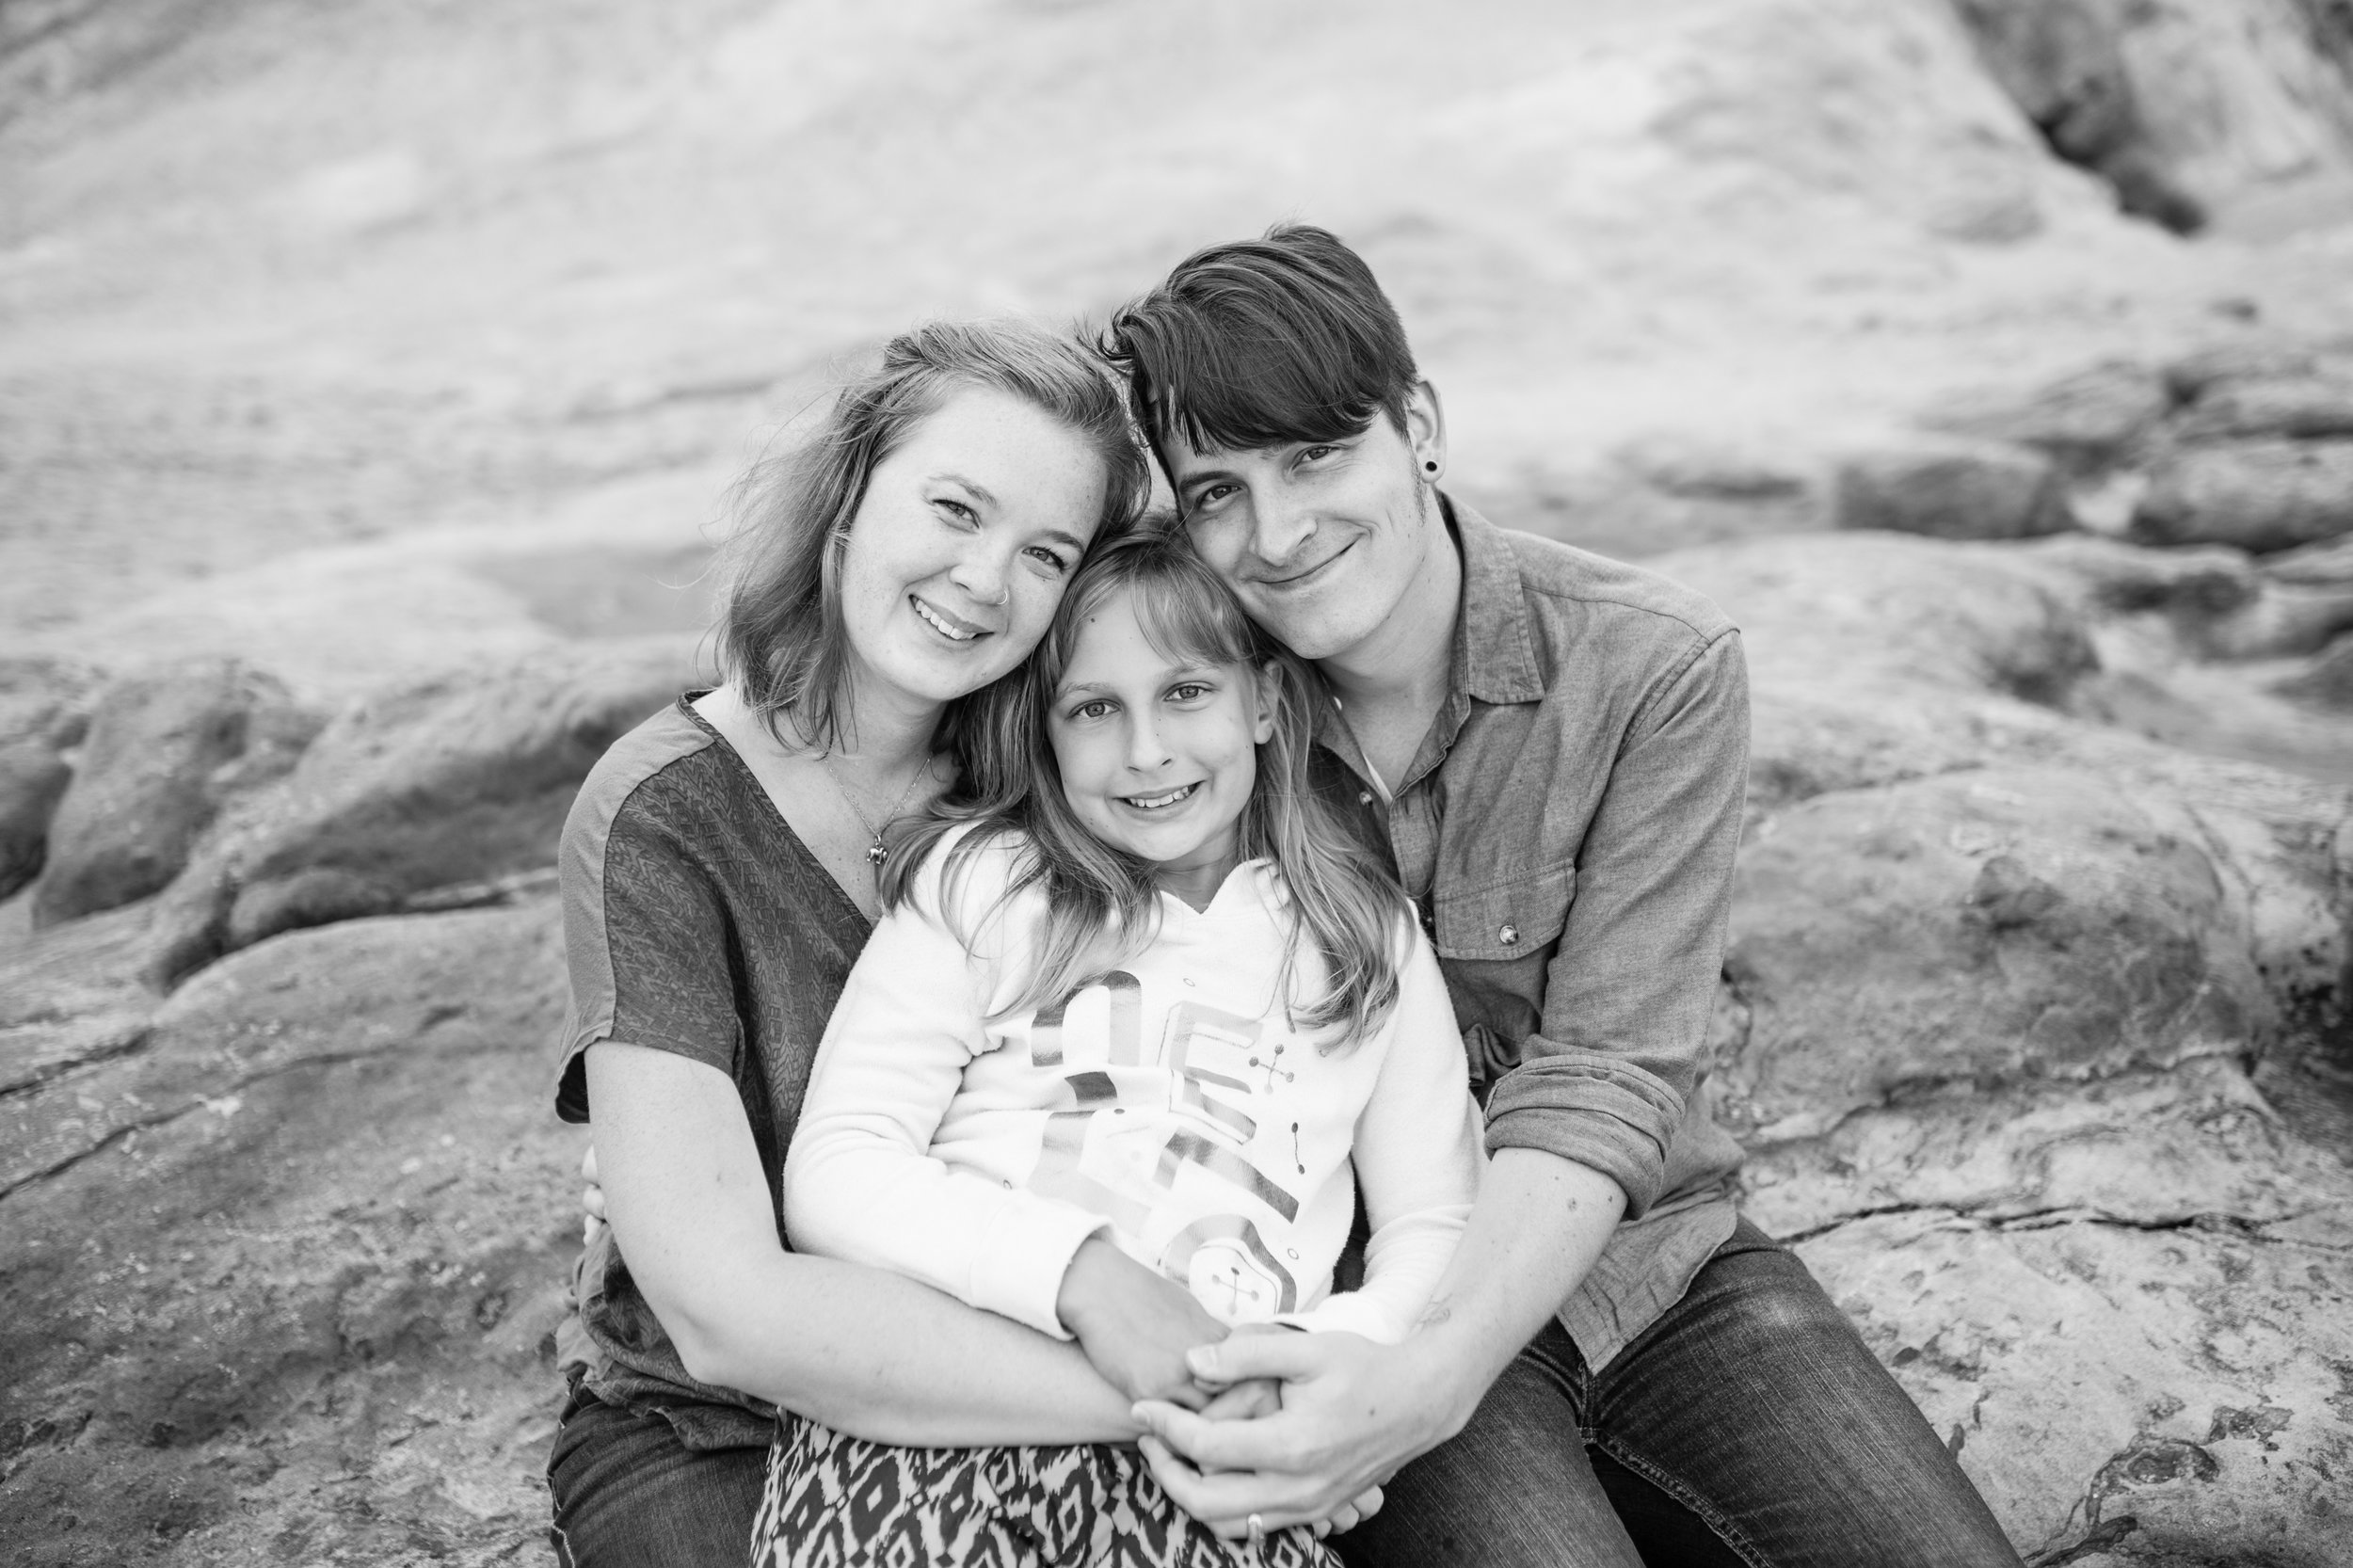 pacific-city-family-photography-25.jpg